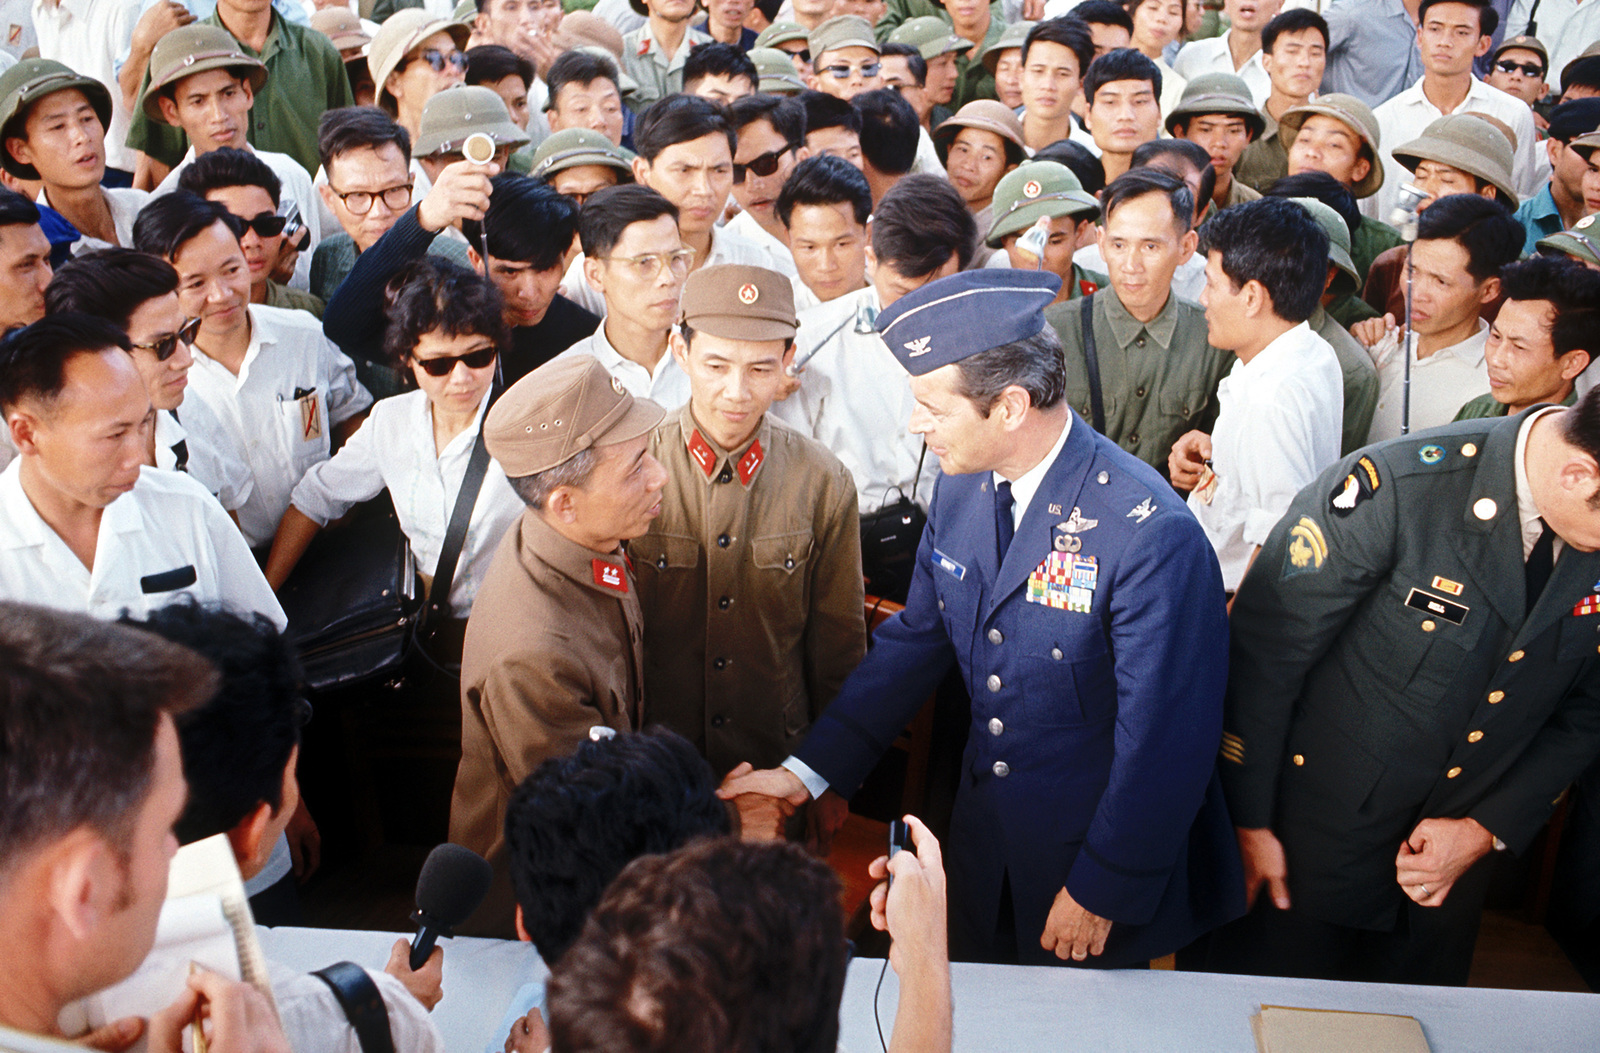 An unidentified U.S. Air Force Colonel, part of the prisoner of war returnee delegation, shakes hands with Vietnam officers as a crowd of news media and spectators look on